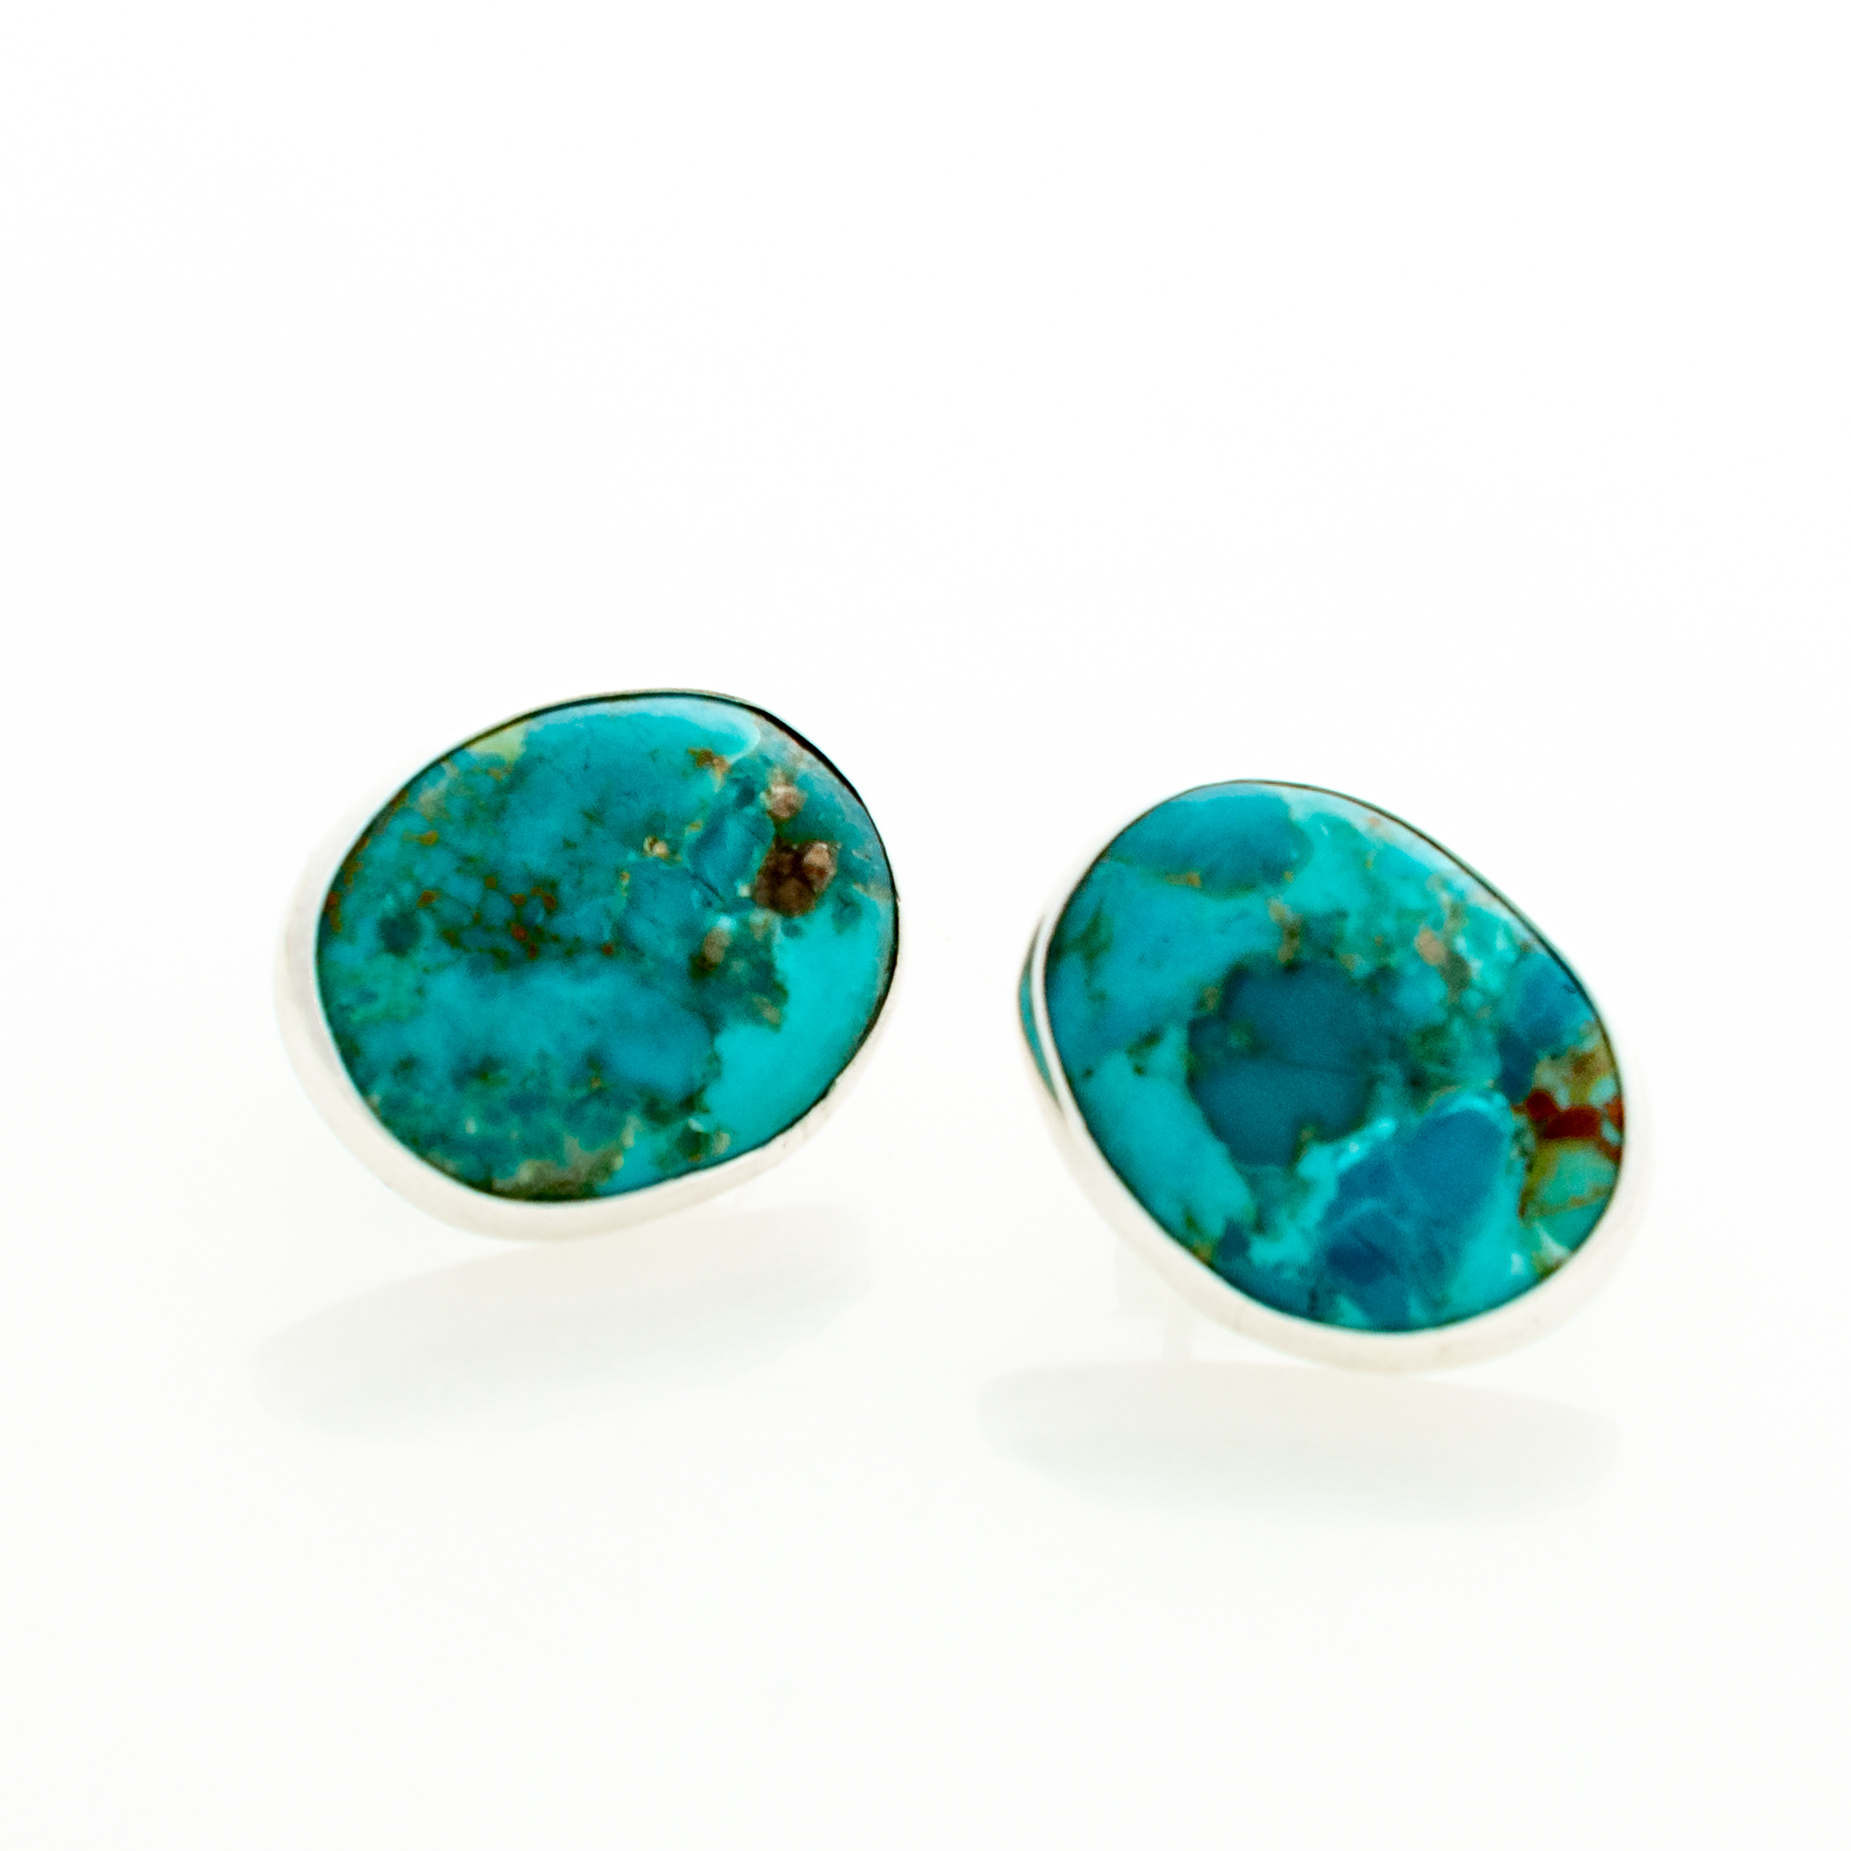 Turquoise Post Earrings in Sterling Silver